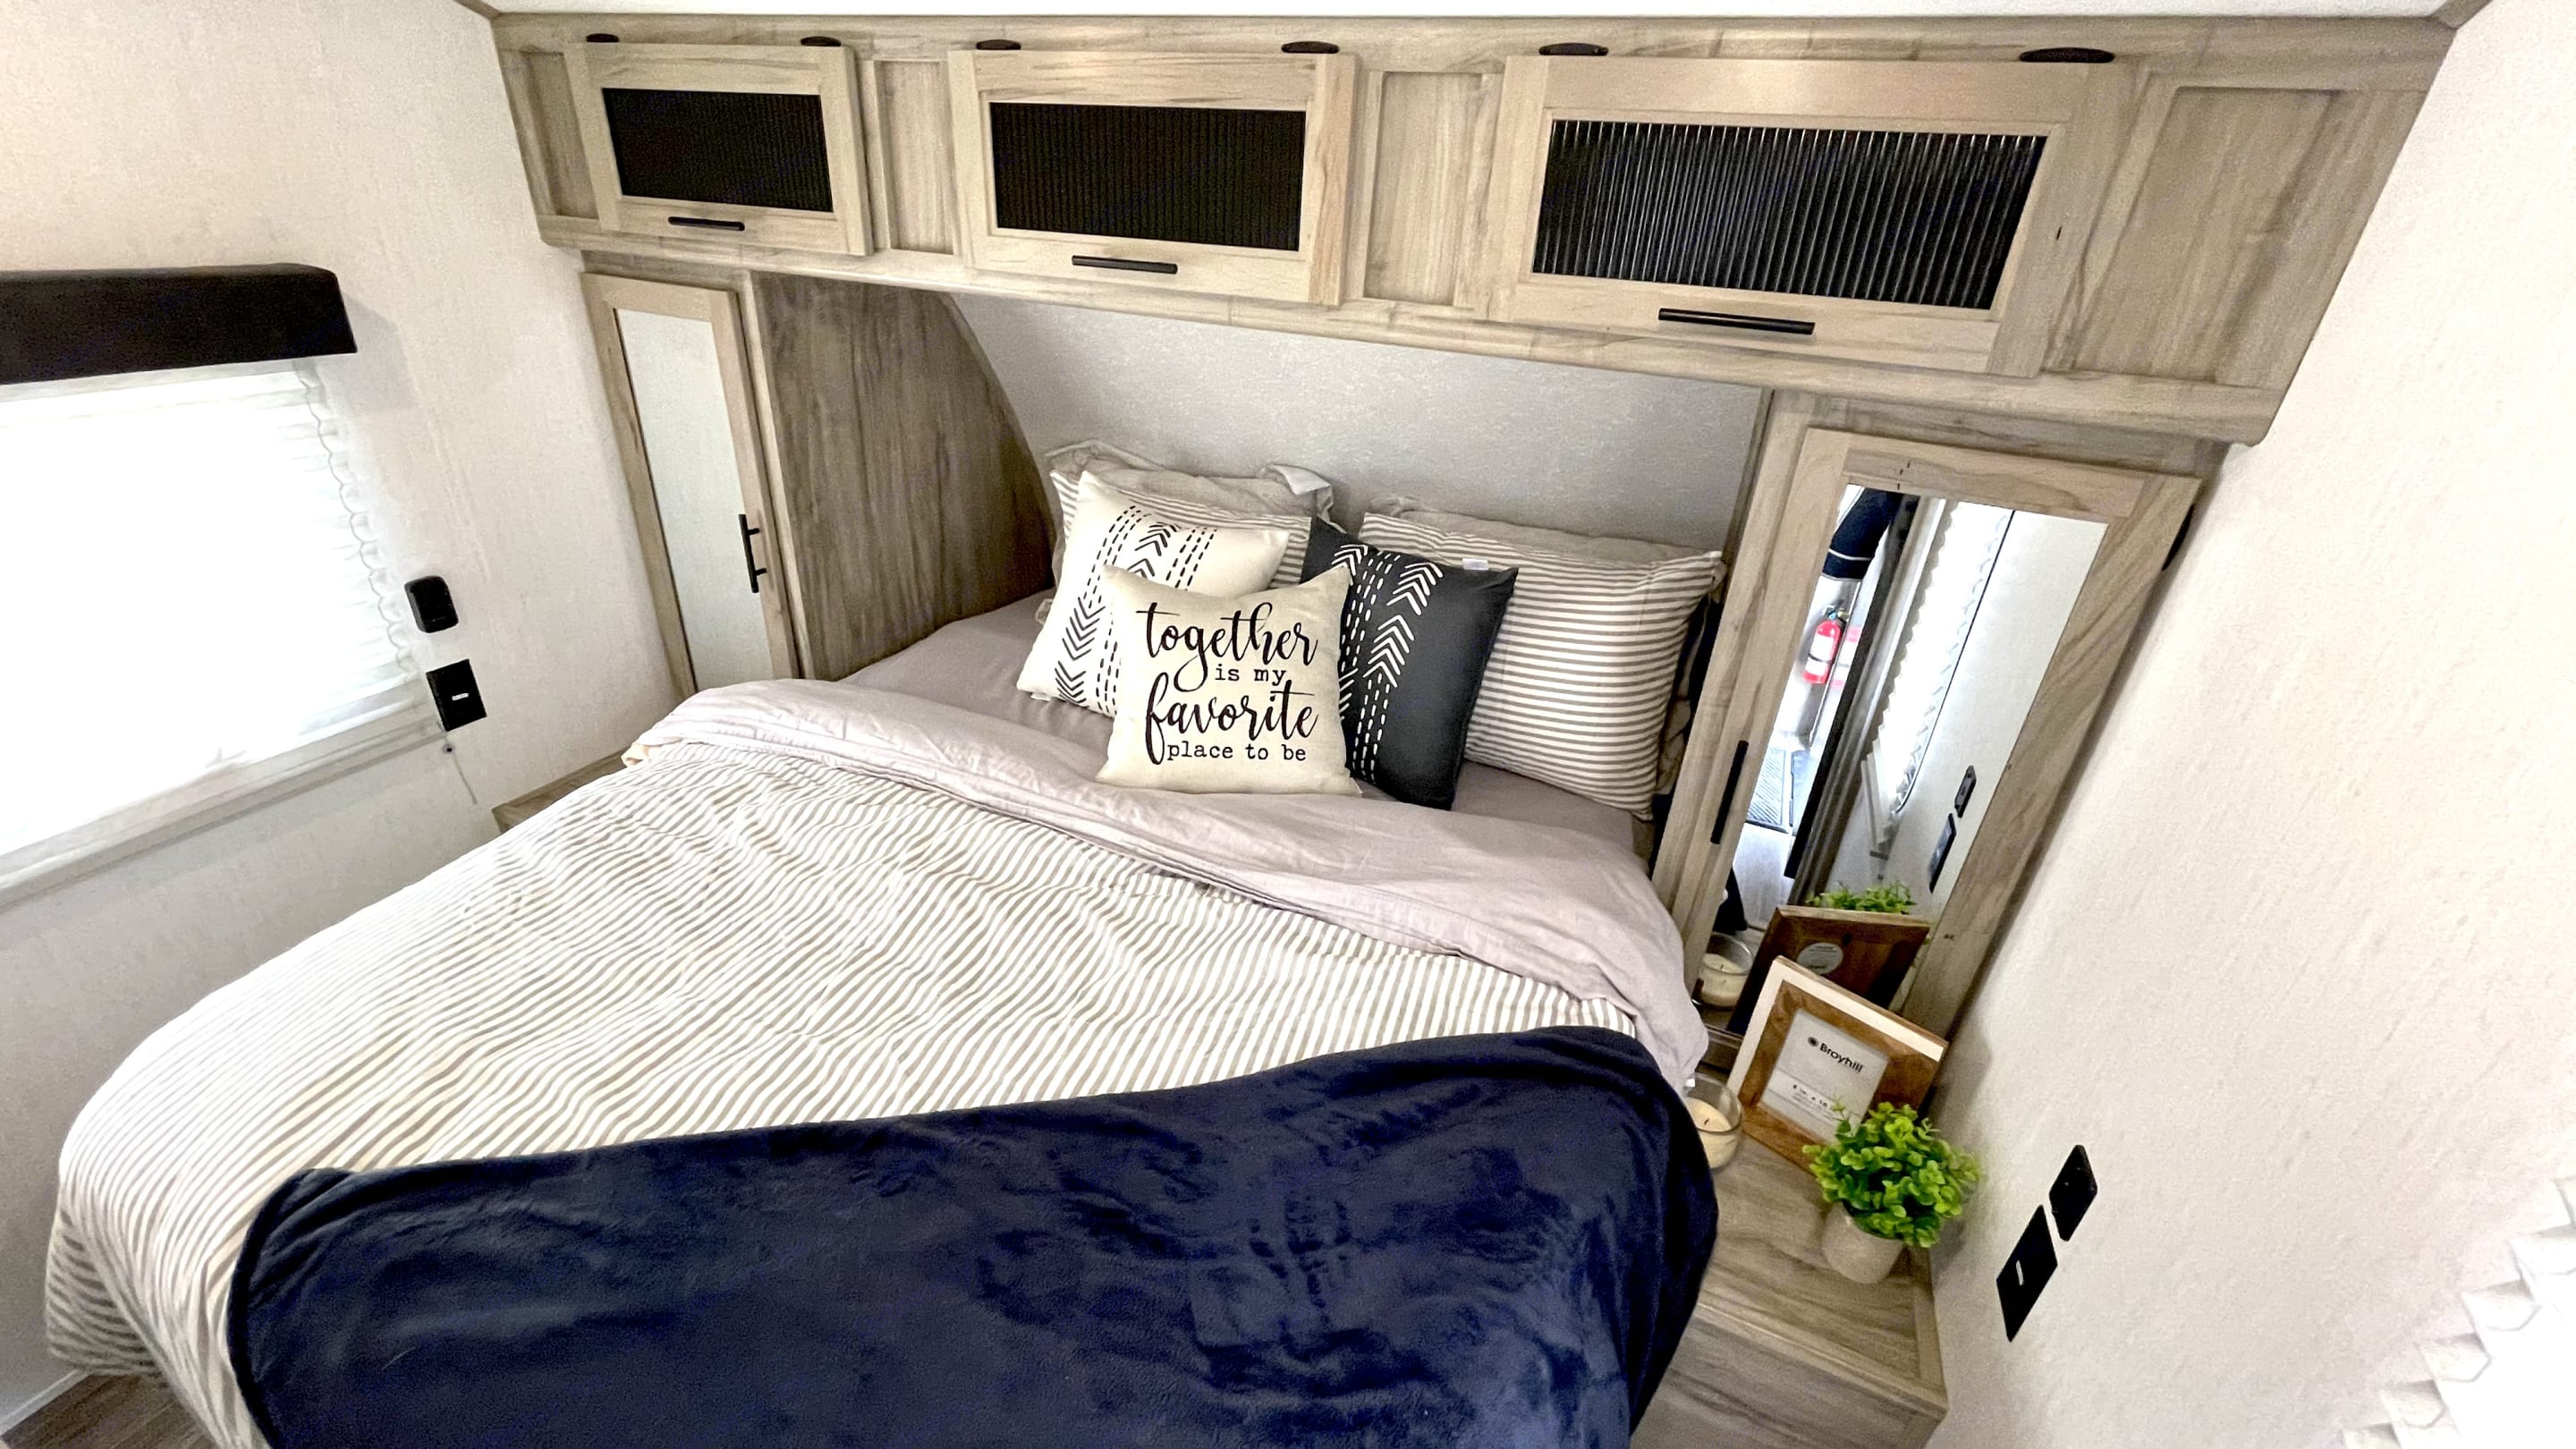 Queen size bed with 2 closets and 2 bedroom doors for easy access to both sides of the bed. Forest River Cherokee 2021